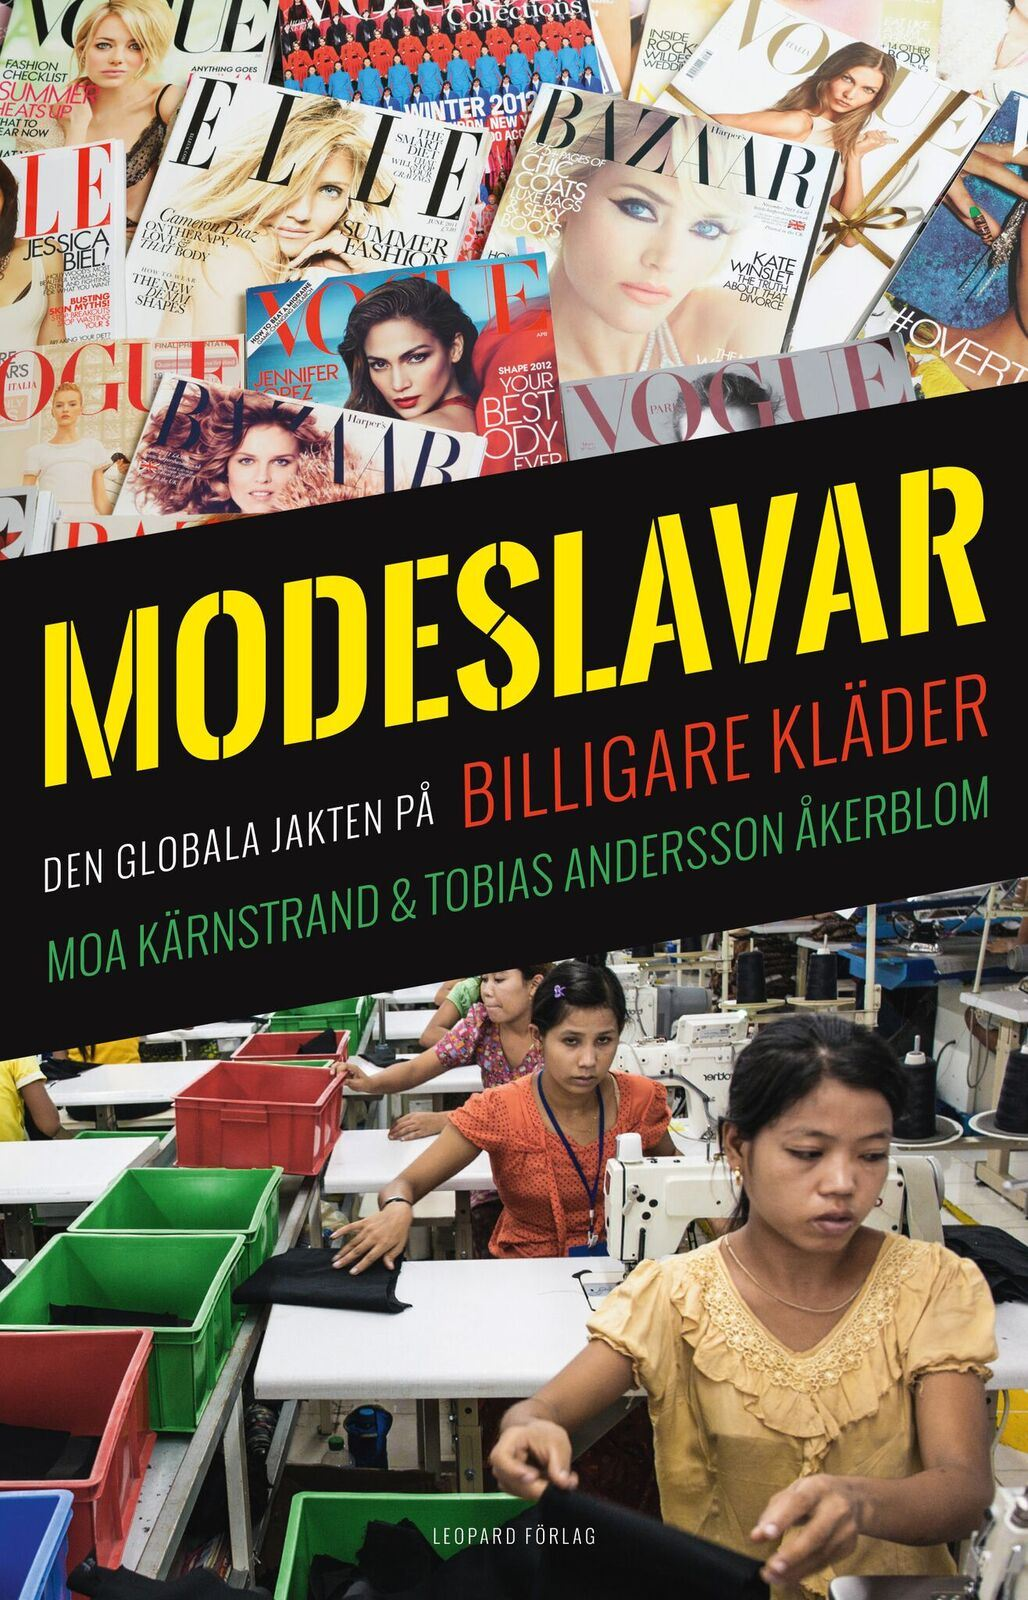 Slave to the fashion - the global pursuit of cheaper clothes